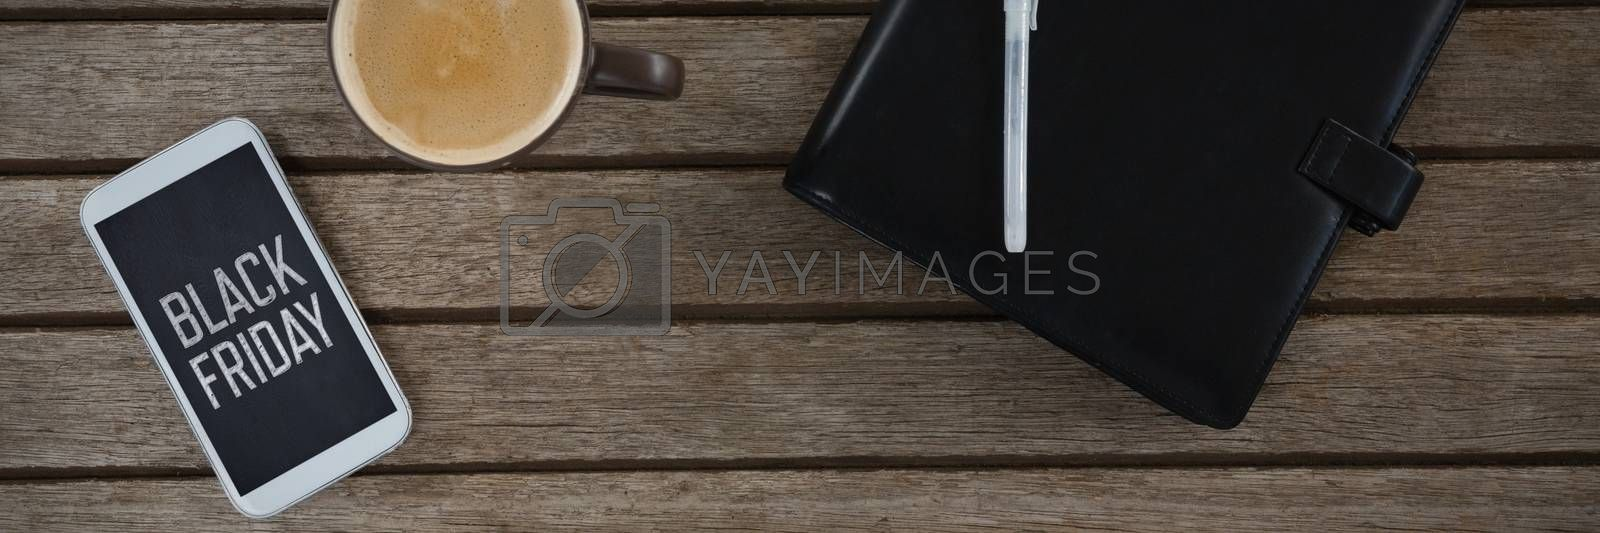 Mobile phone, coffee, pen and organizer on wooden plank against black friday advert